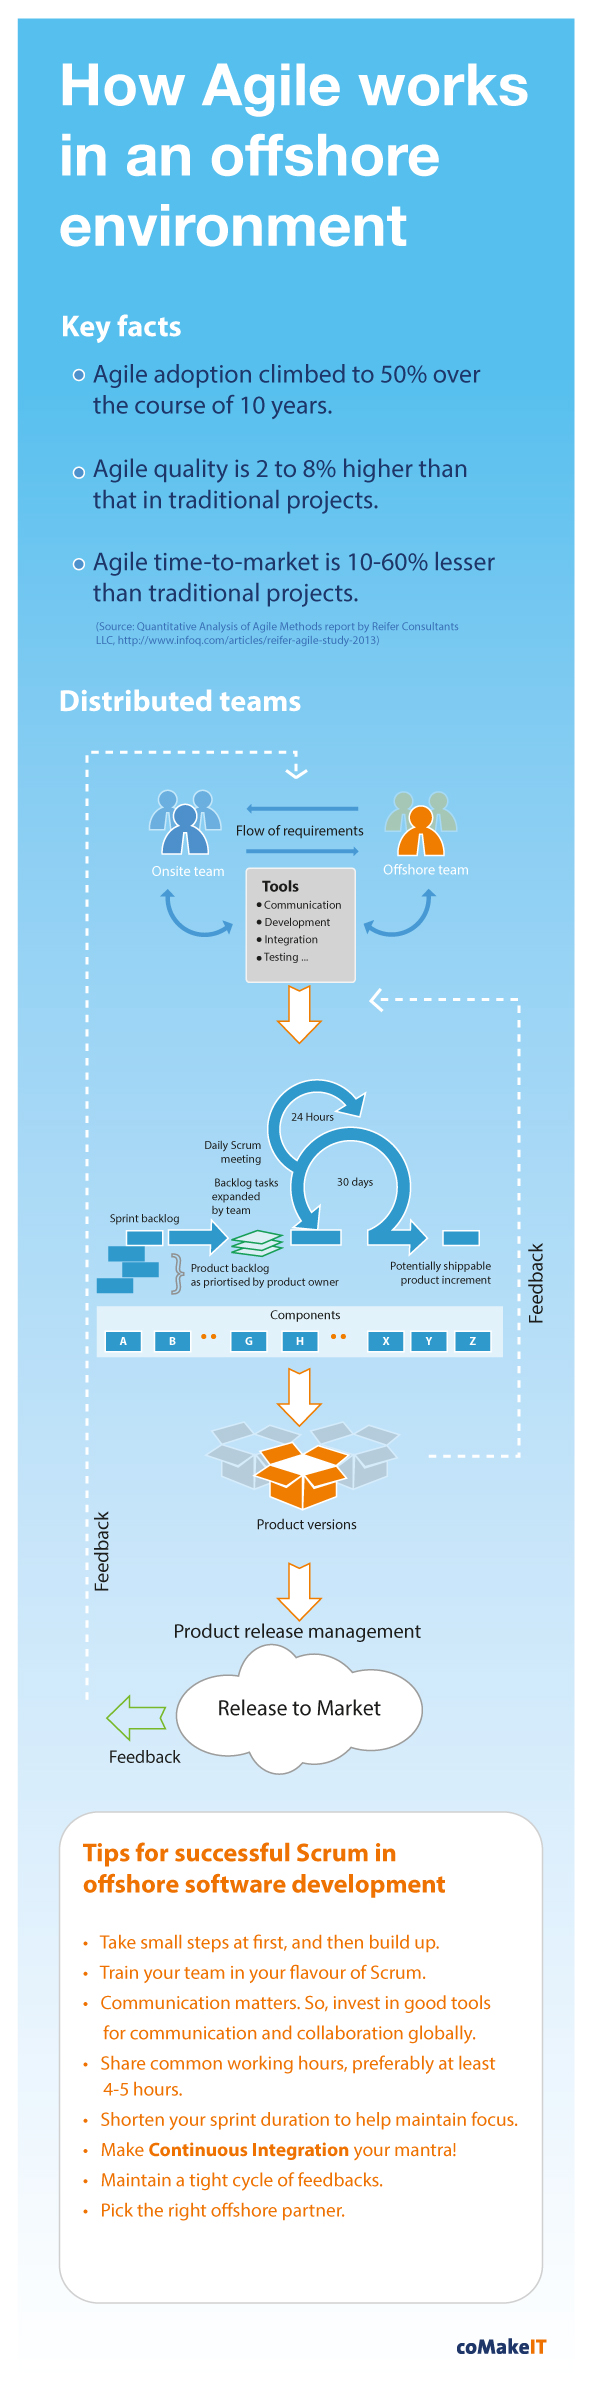 Agile Offshoring Infographic